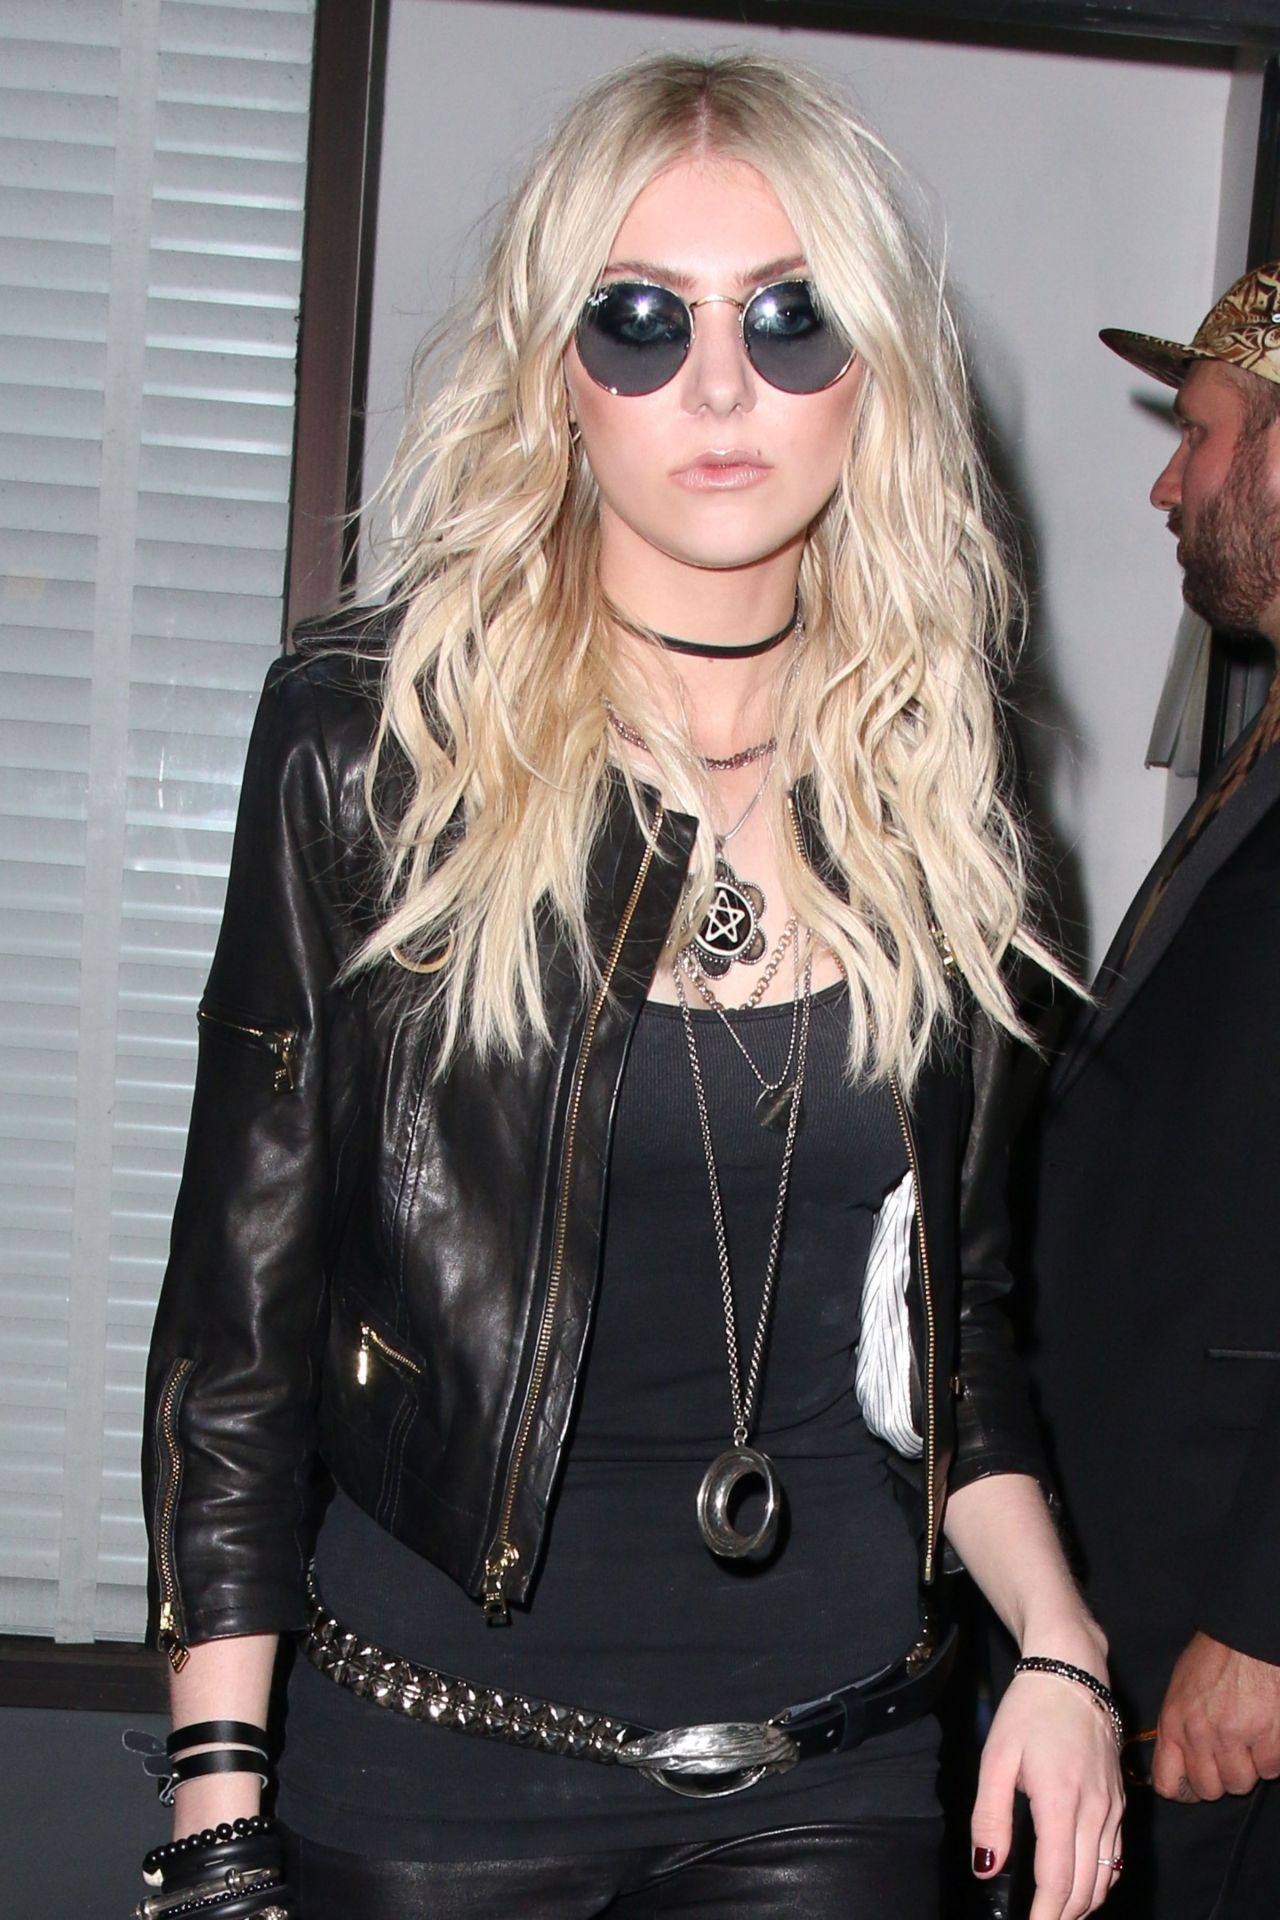 Taylor Momsen Night Out Style Leaving Warwick Nightclub